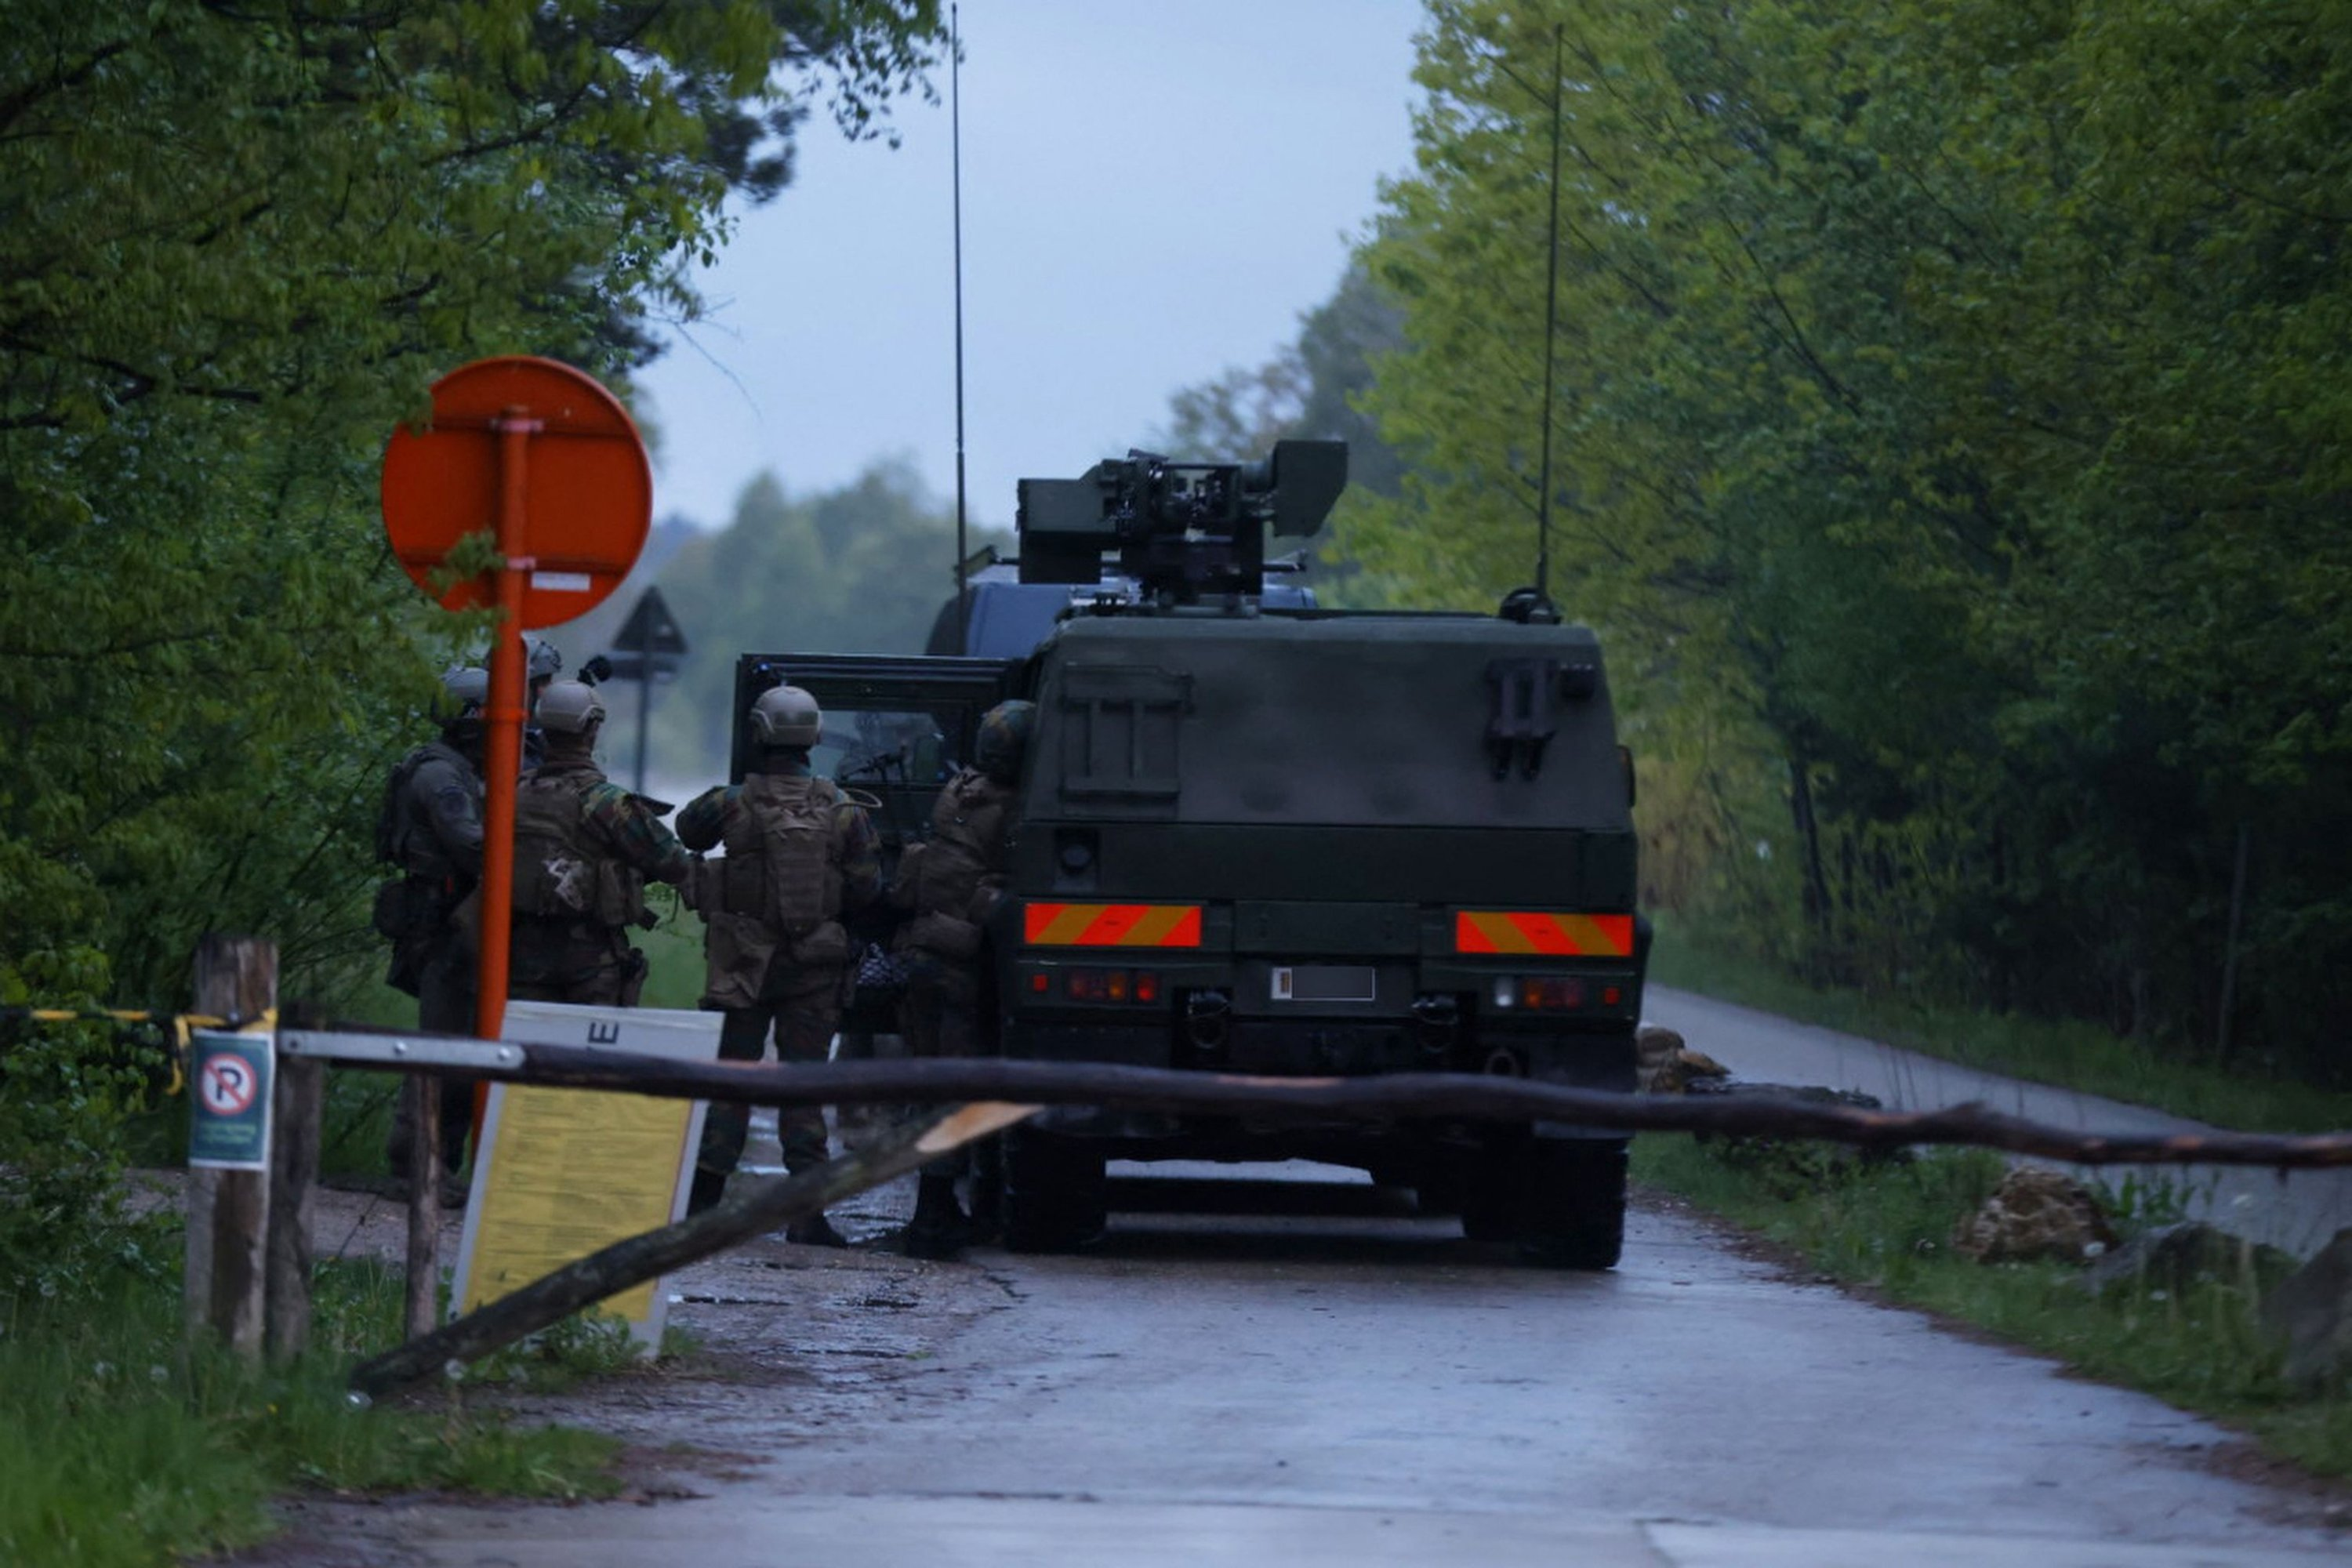 Military special forces arrive with an army armored truck, at the forest of National Park Hoge Kempen in Dilsen-Stokkem, on May 19, 2021 as authorities are looking for a heavily armed professional soldier, Jurgen Conings, in the province of Limburg, since May 18, 2021. (Photo: James Arthur Gekiere/Belga via AFP)